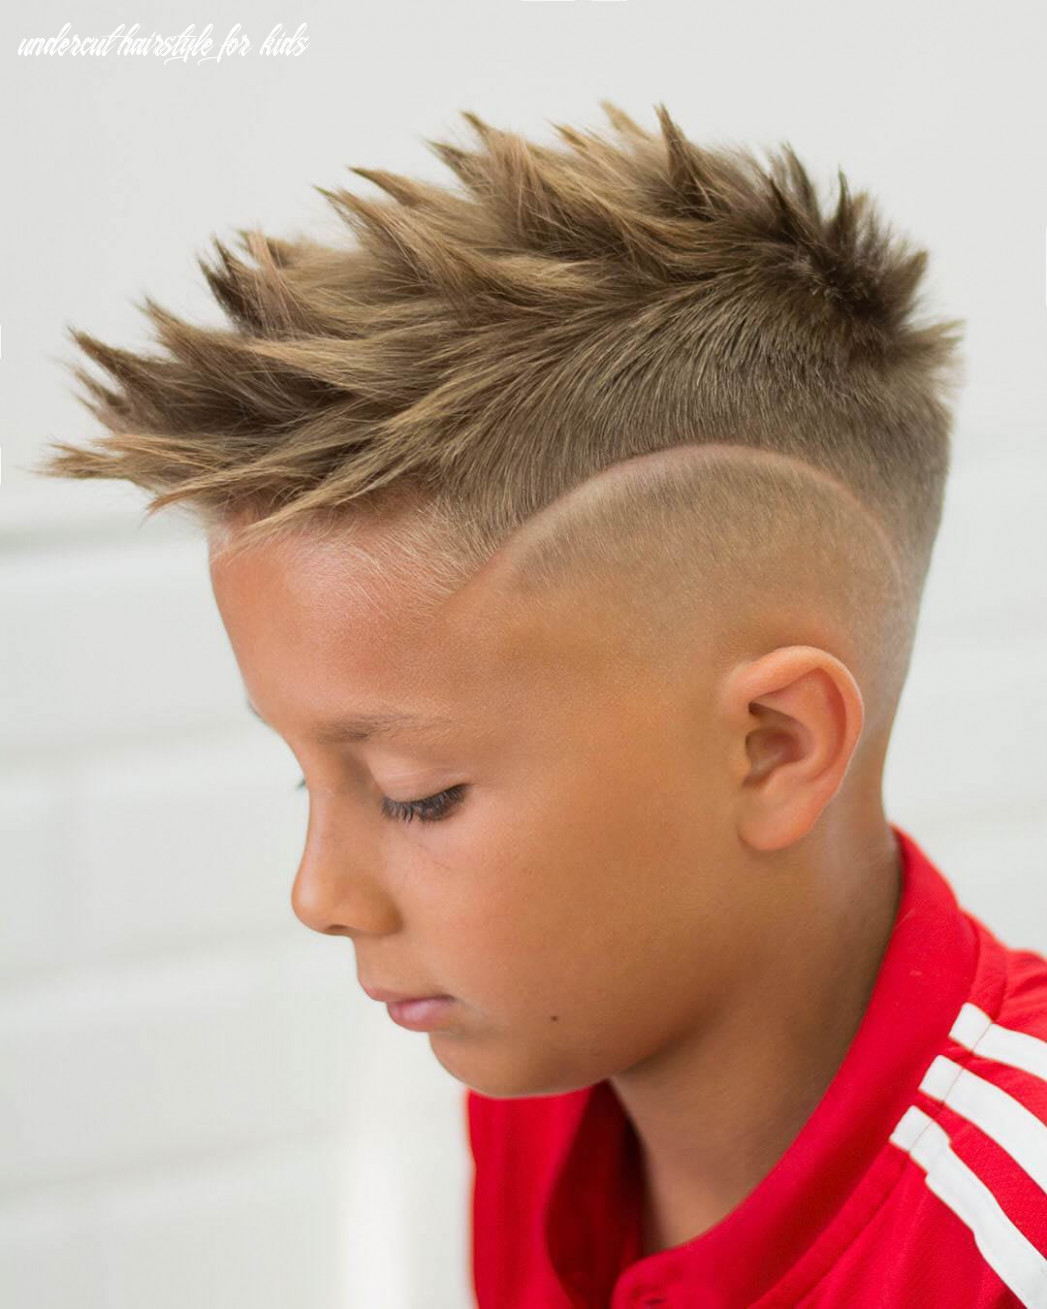 11 excellent school haircuts for boys styling tips undercut hairstyle for kids